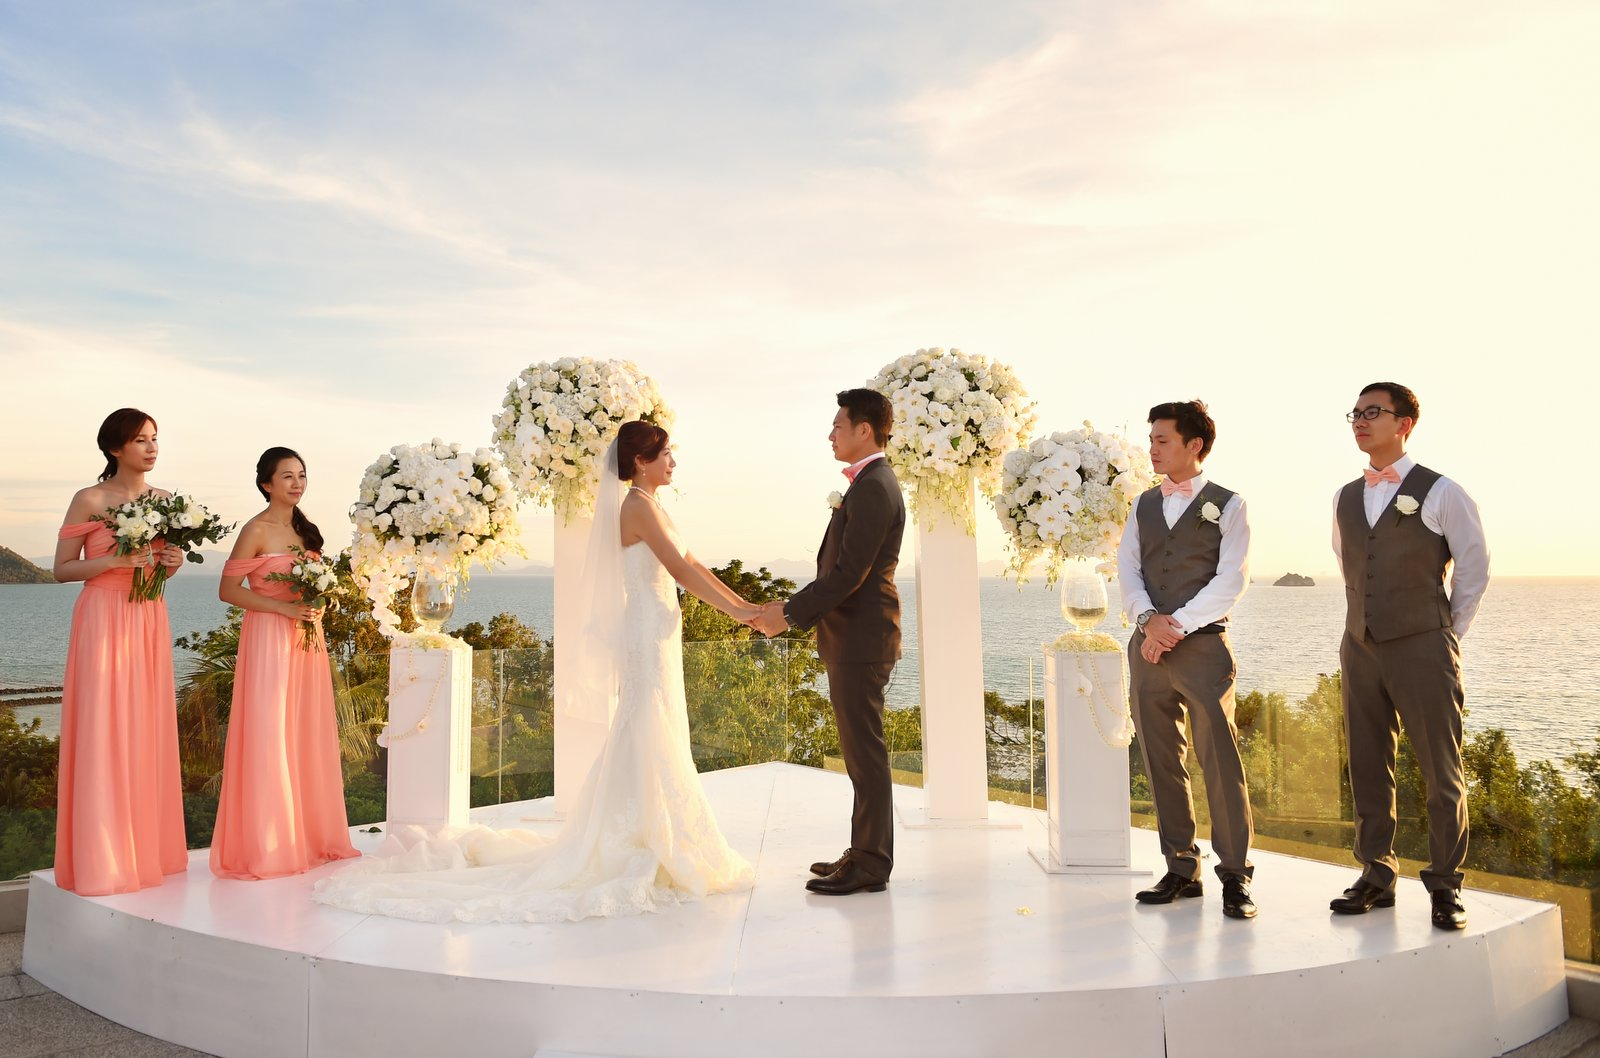 Destination wedding photography, Hong Kong